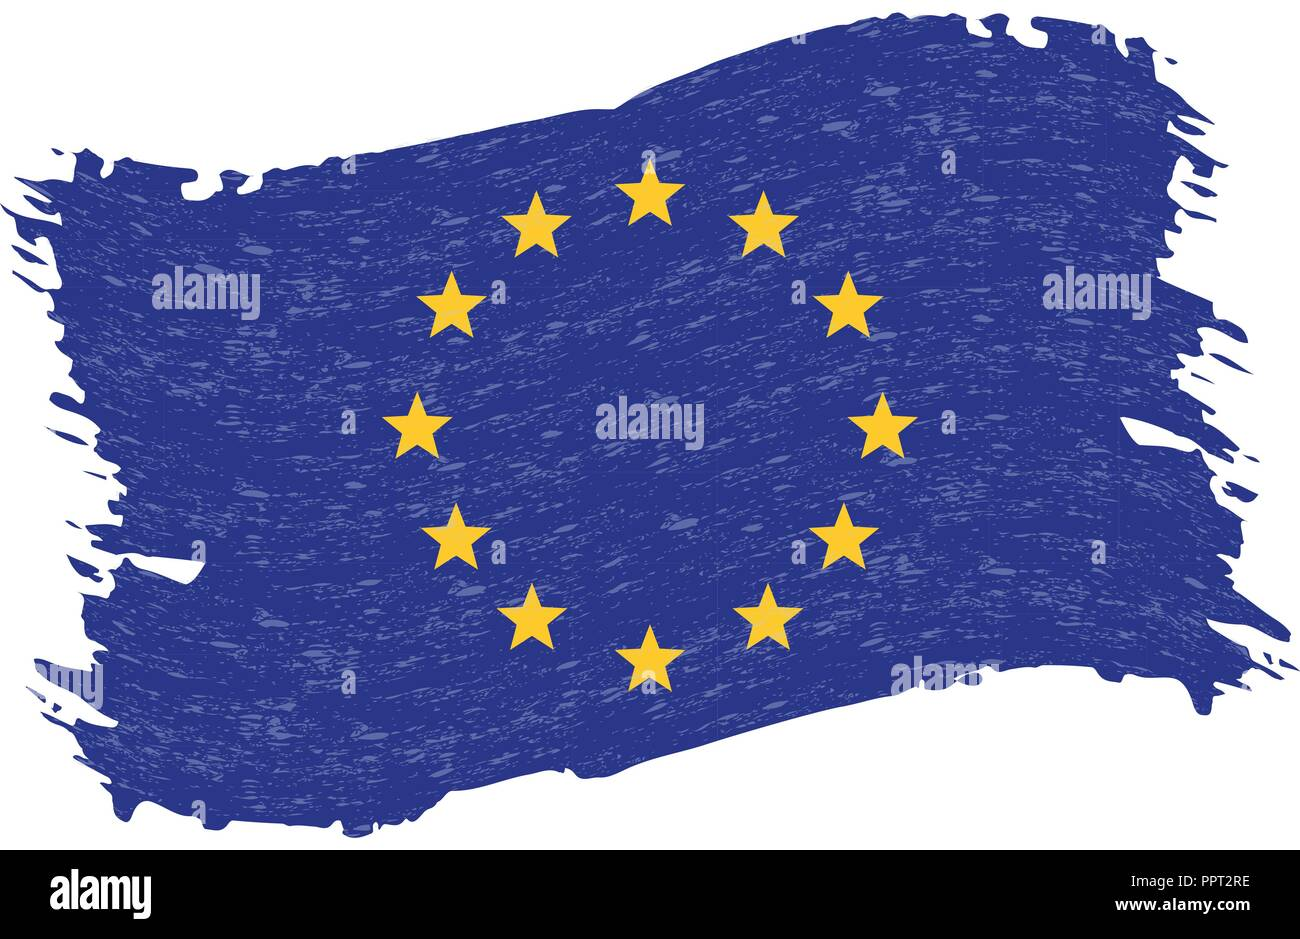 Flag of The European Union, Grunge Abstract Brush Stroke Isolated On A White Background. Vector Illustration. - Stock Image